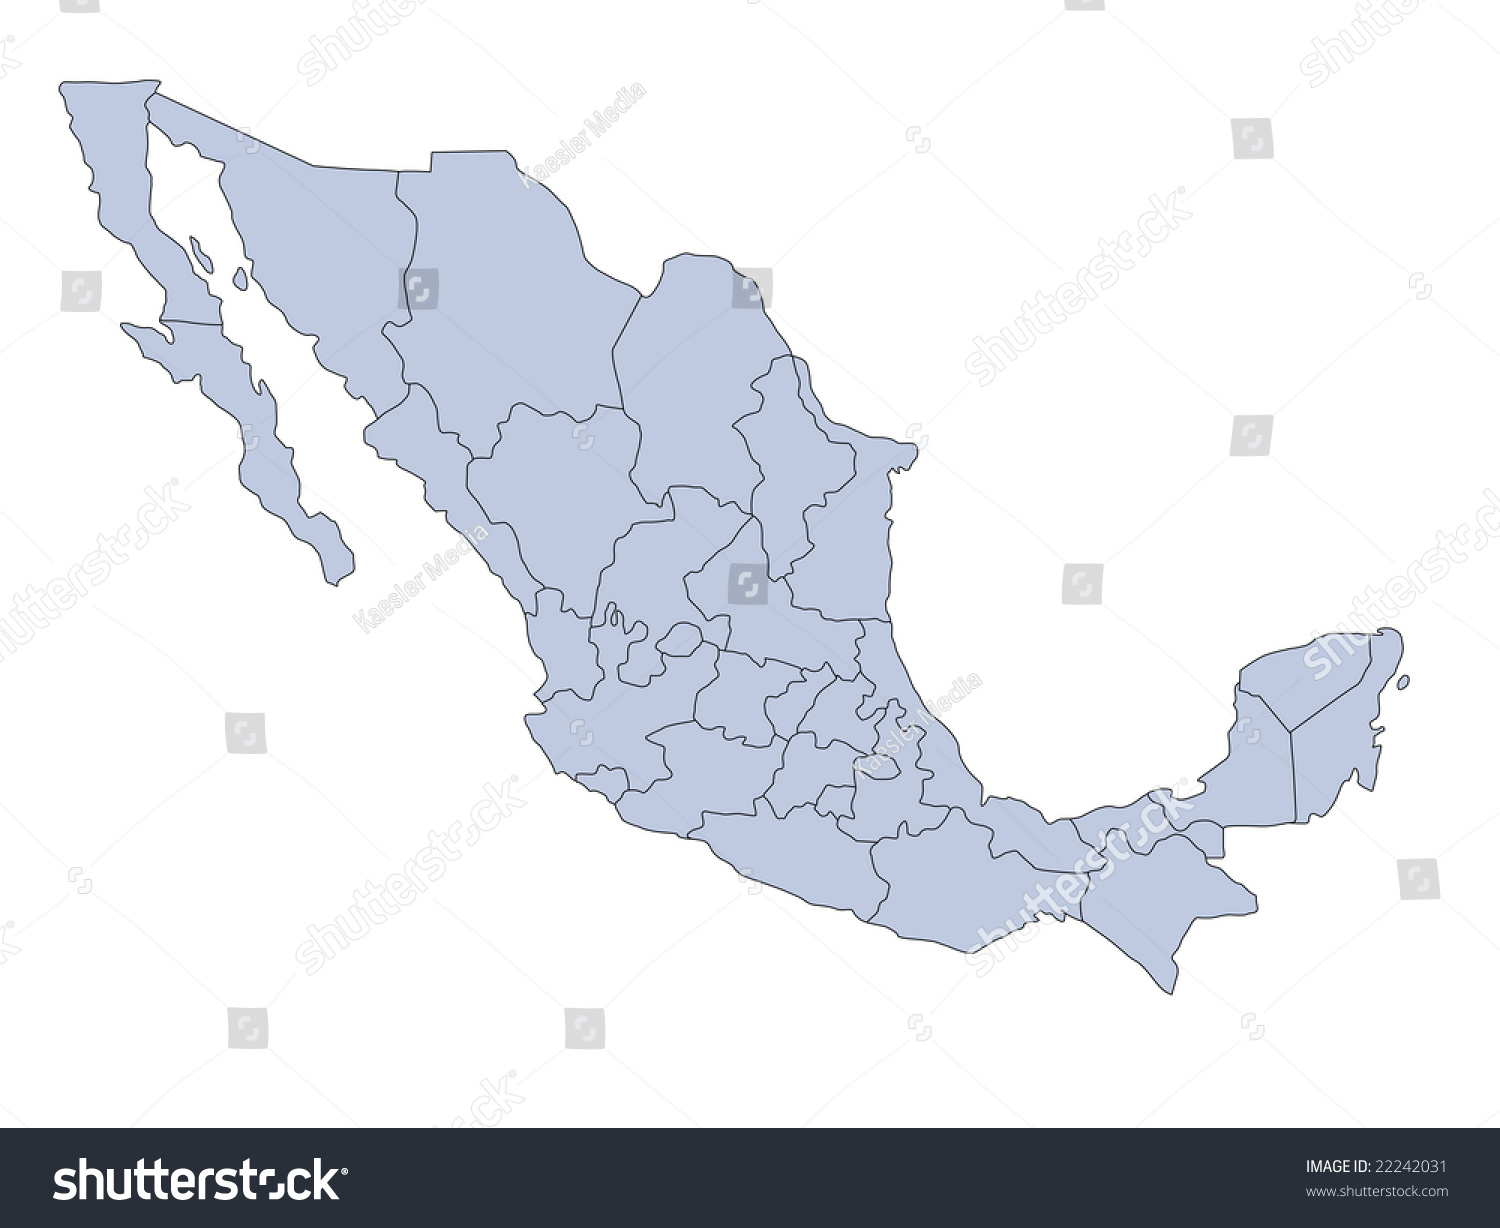 stylized map mexico showing different provinces stock illustration